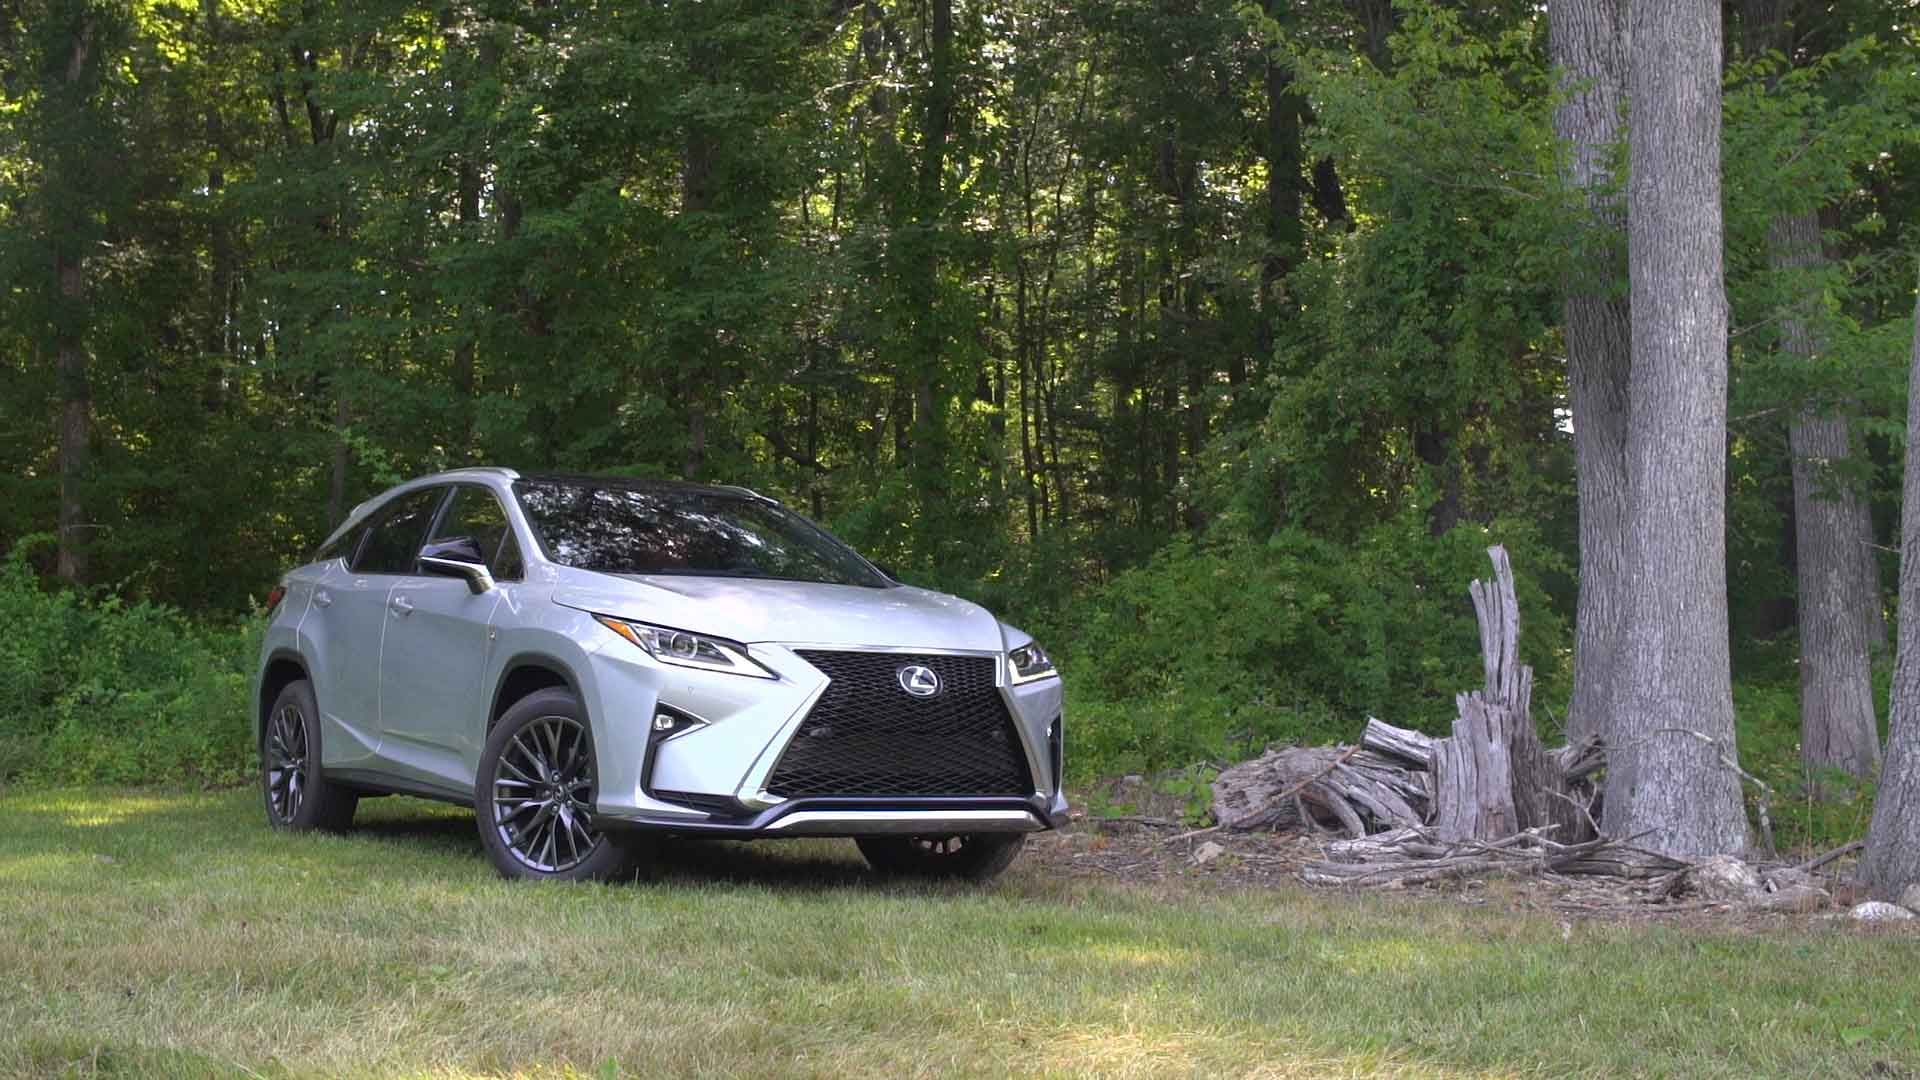 Lexus RX Reviews Ratings Prices Consumer Reports - Lexus rx 350 invoice price 2018